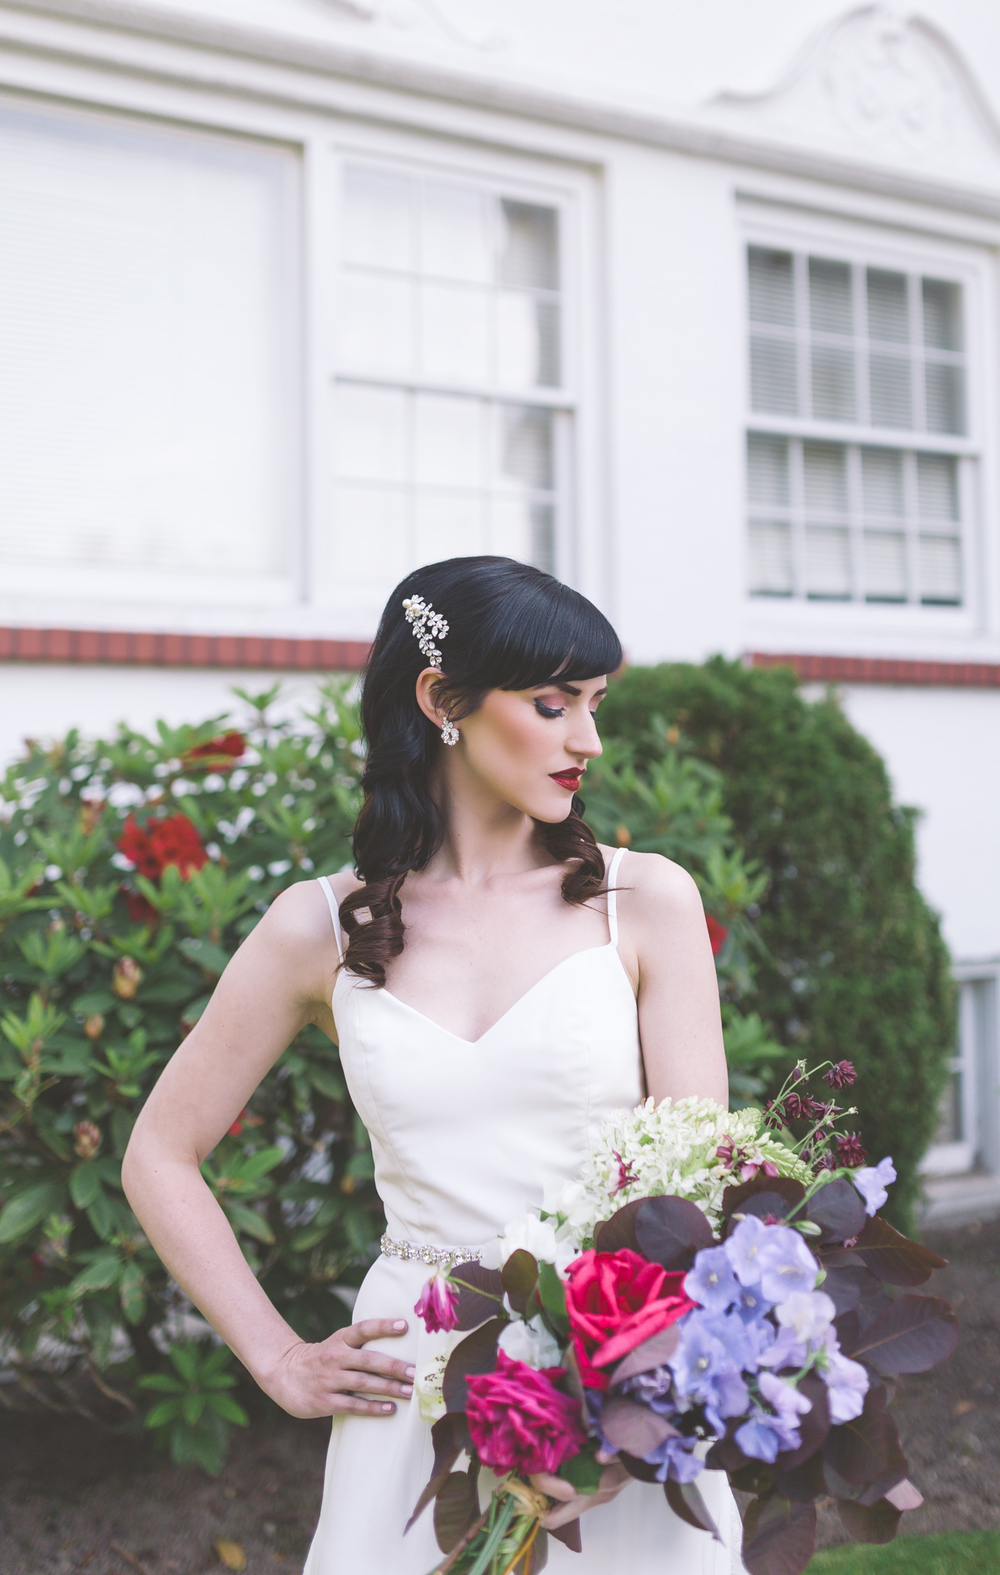 IMG_3474-VANCOUVER-BRIDAL-EDITORIAL-JENNIFER-PICARD-PHOTOGRAPHY.jpg